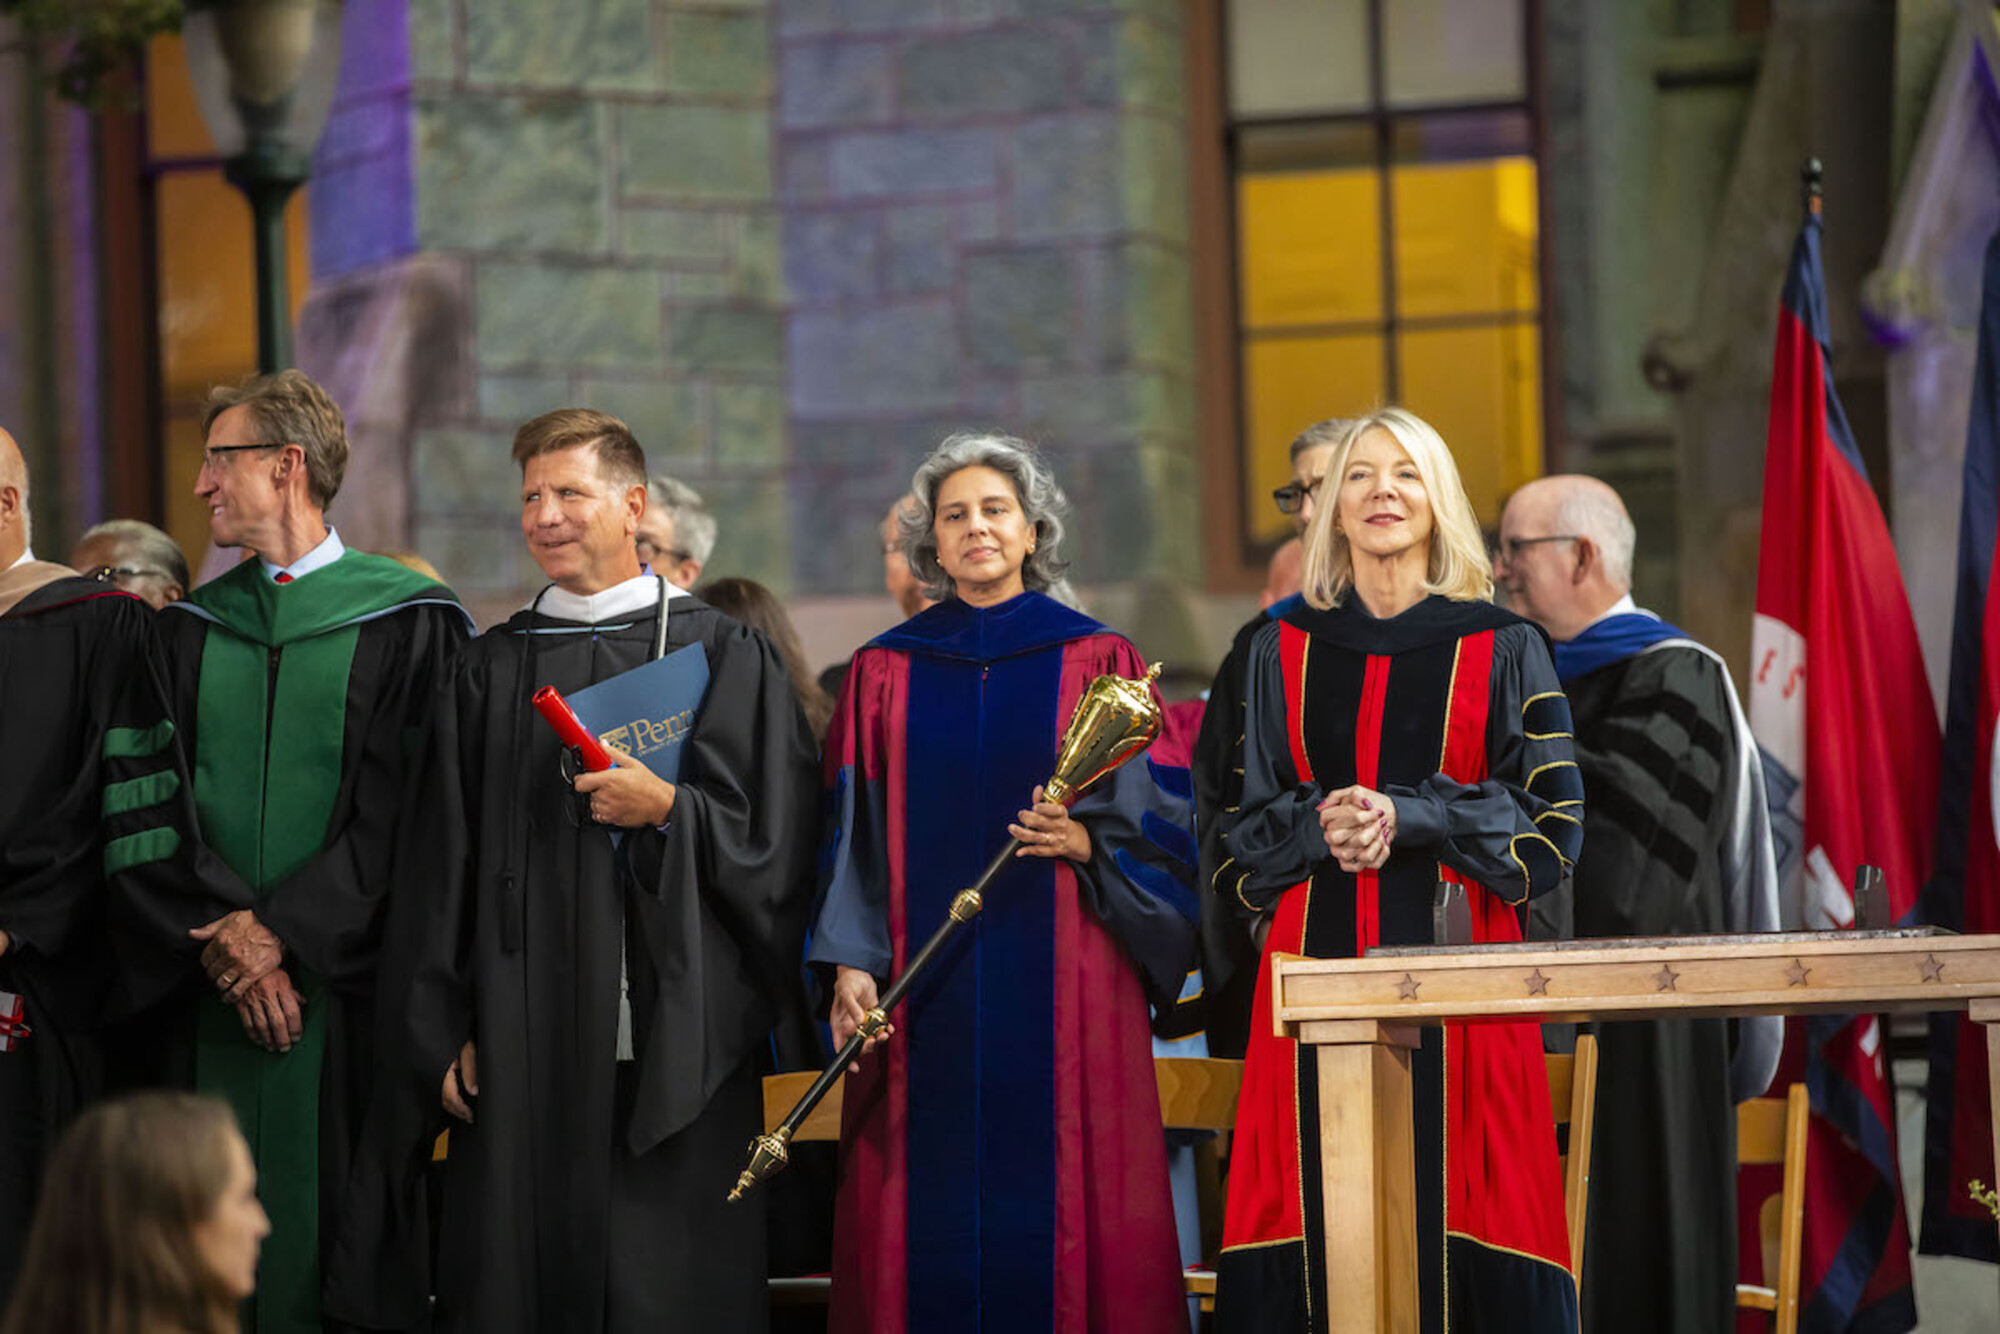 Several people in academic regalia onstage in front of College Hall, including Amy Gutmann at left and Medha Narvekar to her right, holding a mace.